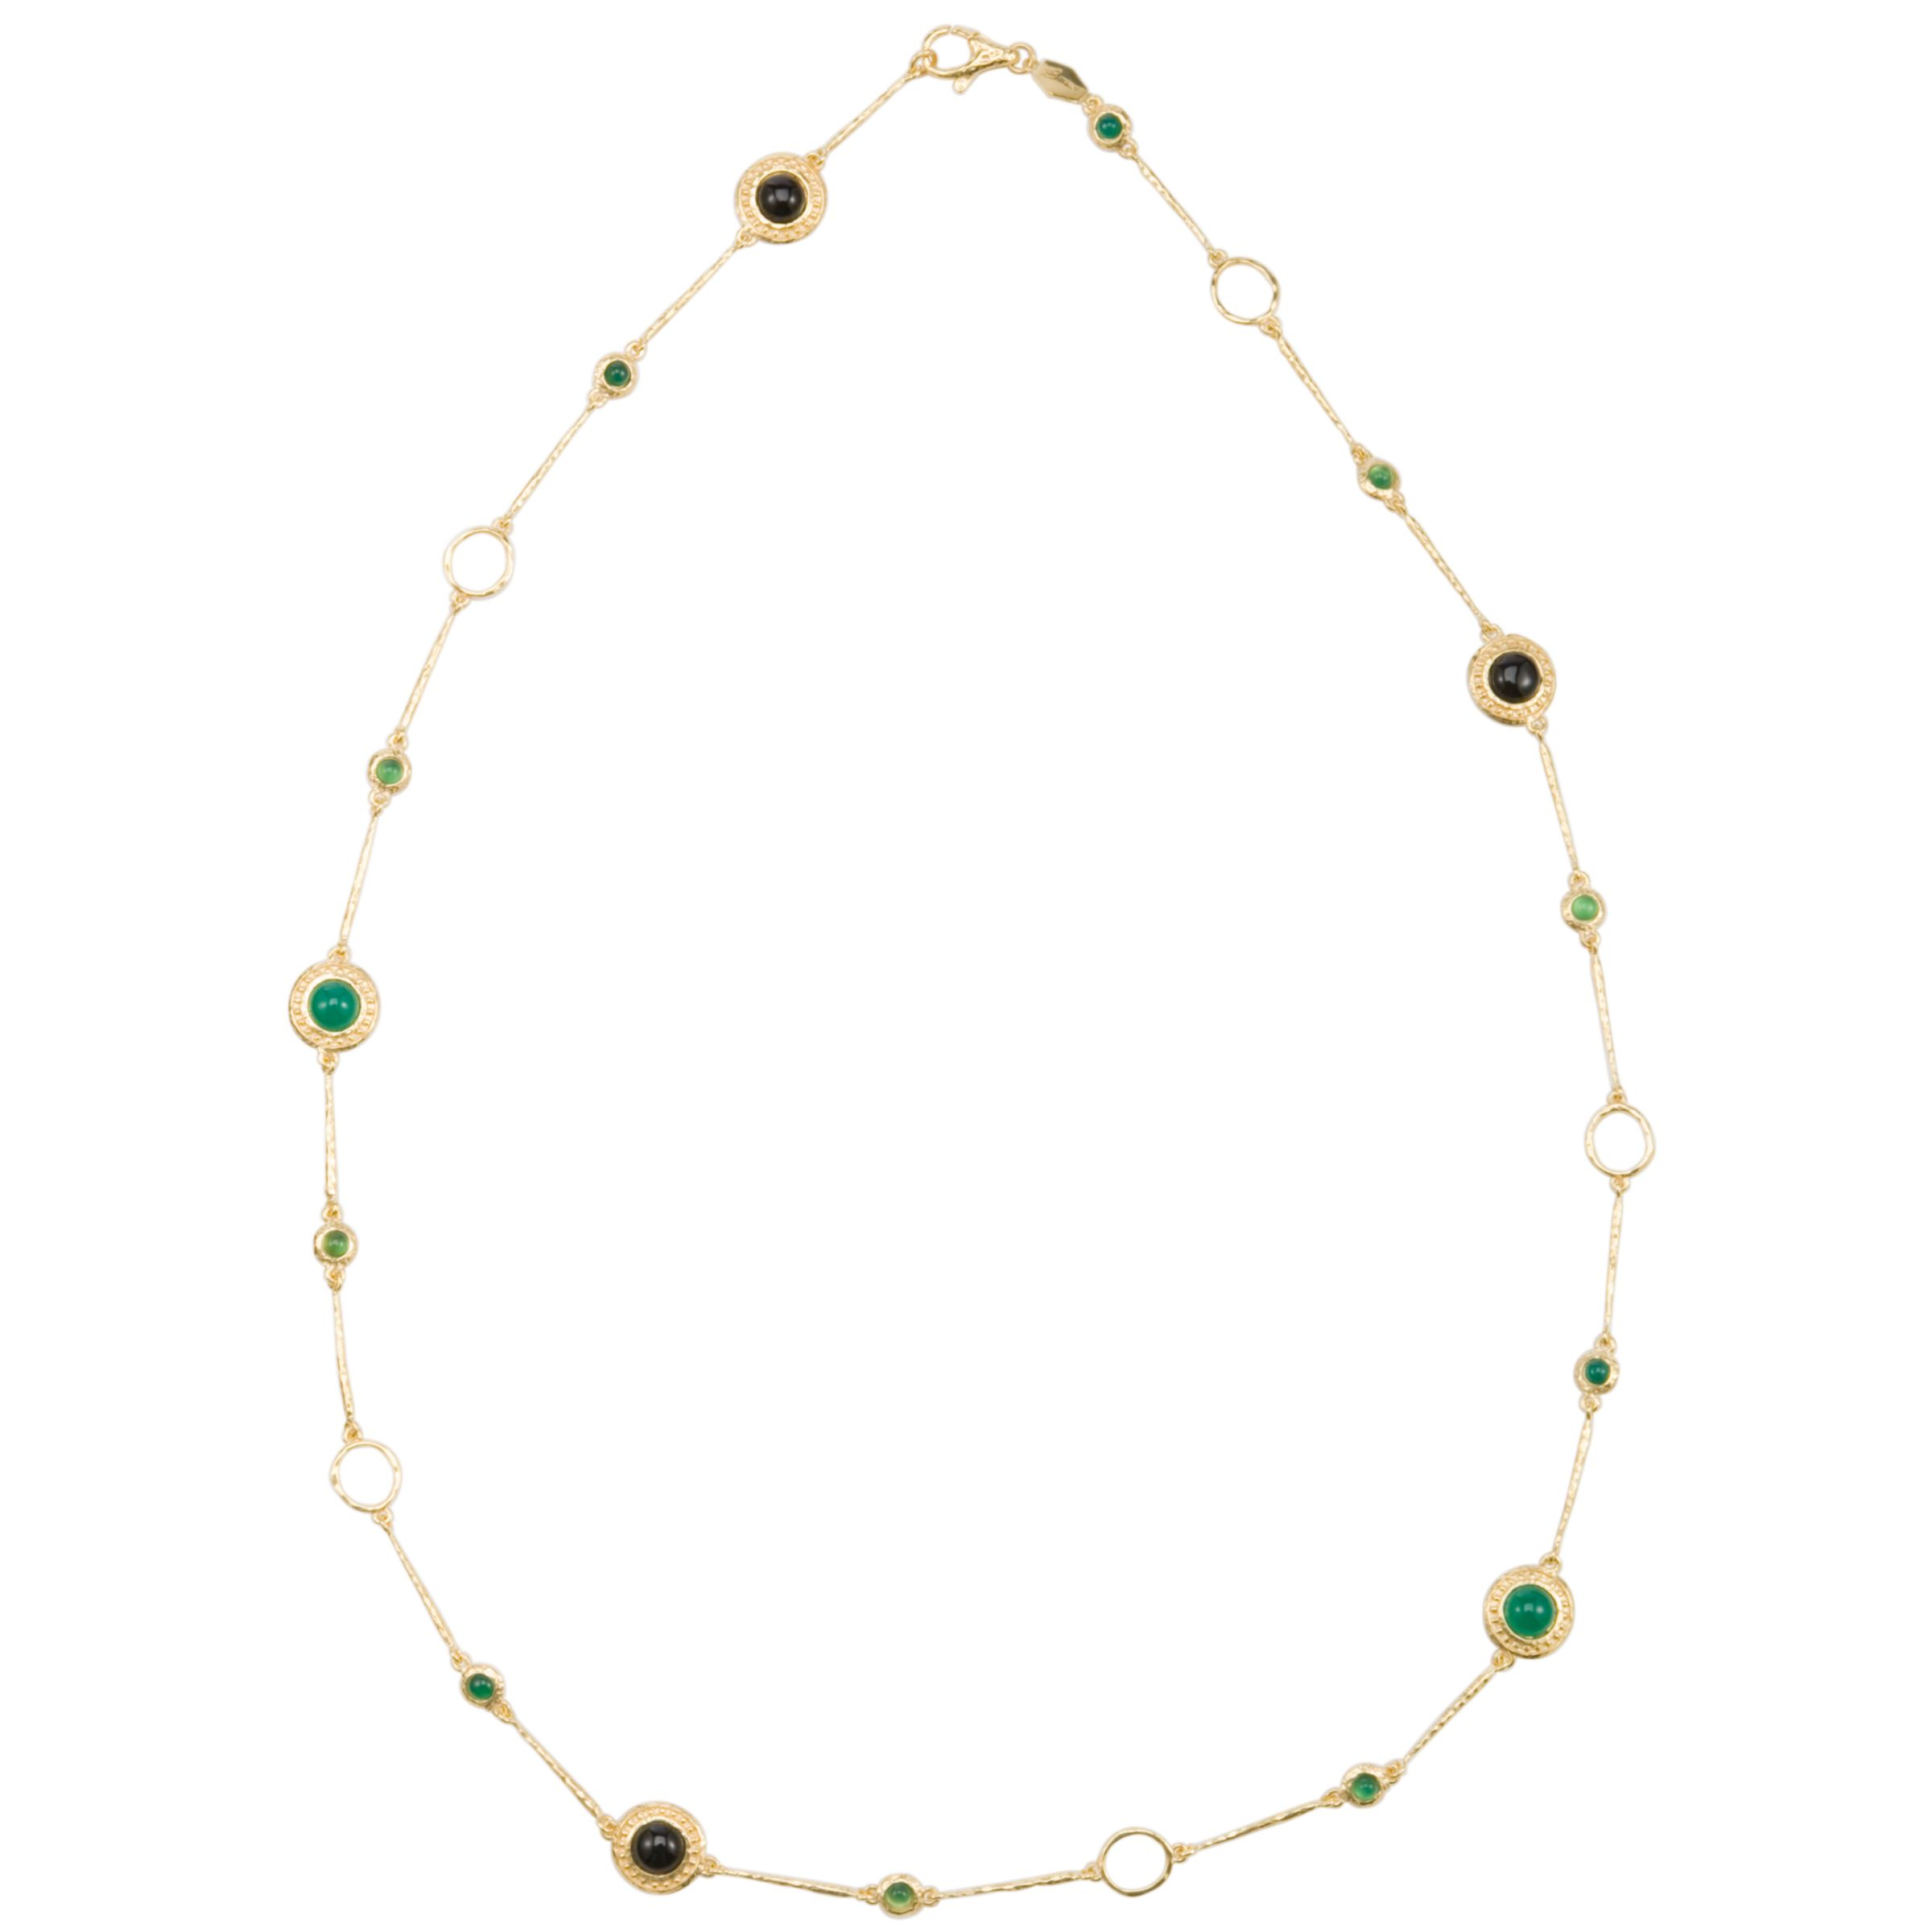 Etrusca 18ct Gold Plated Cabochon Station Necklace, Gold/Green